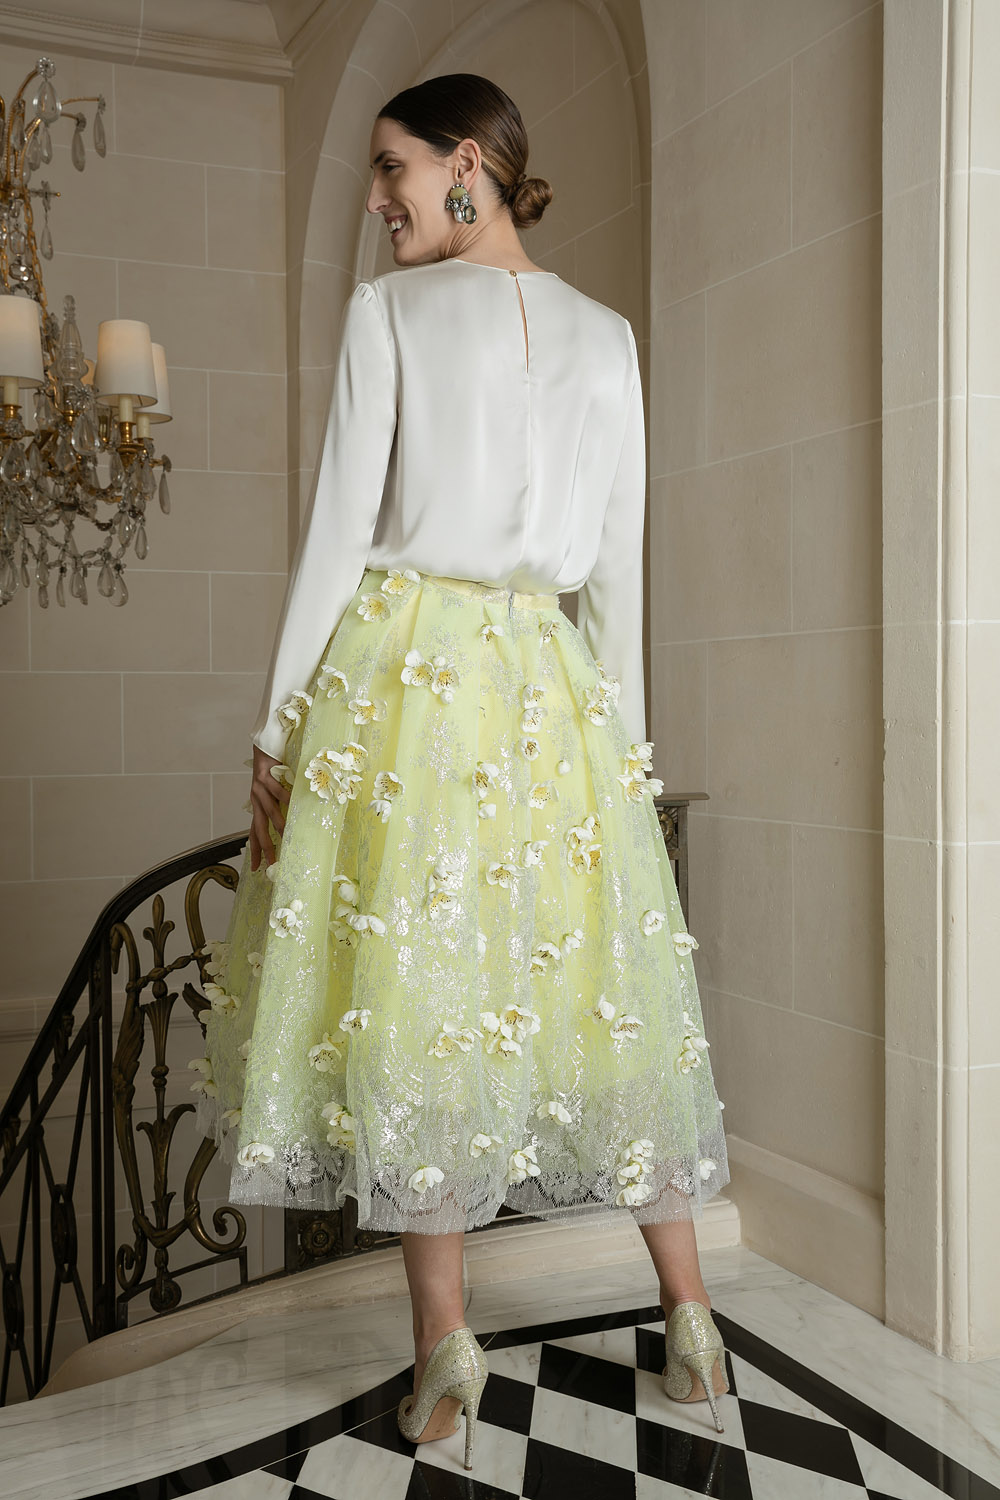 Lemon sorbet frou-frou skirt embellished with lotus blossoms